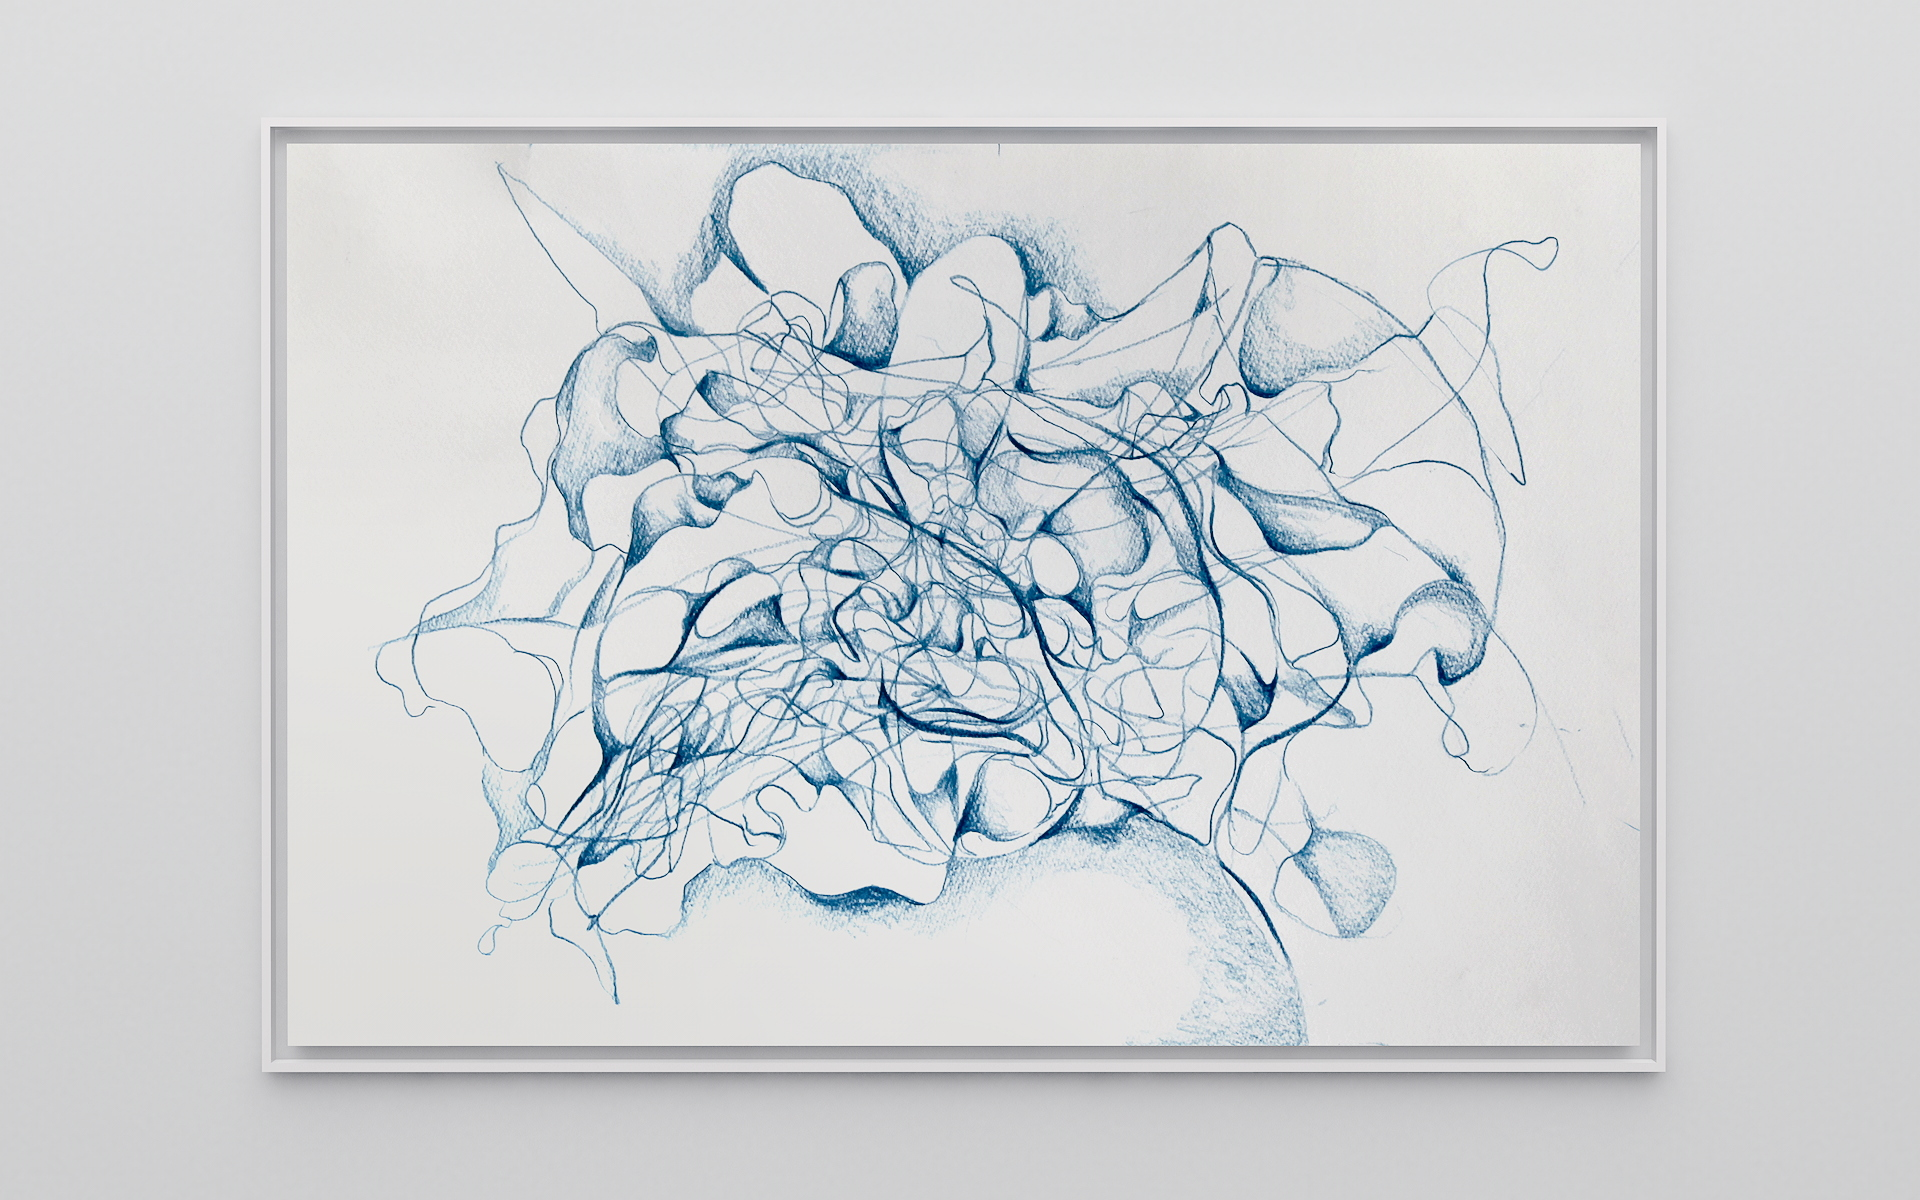 Sougwen Chung, Drawing Operations, 2016